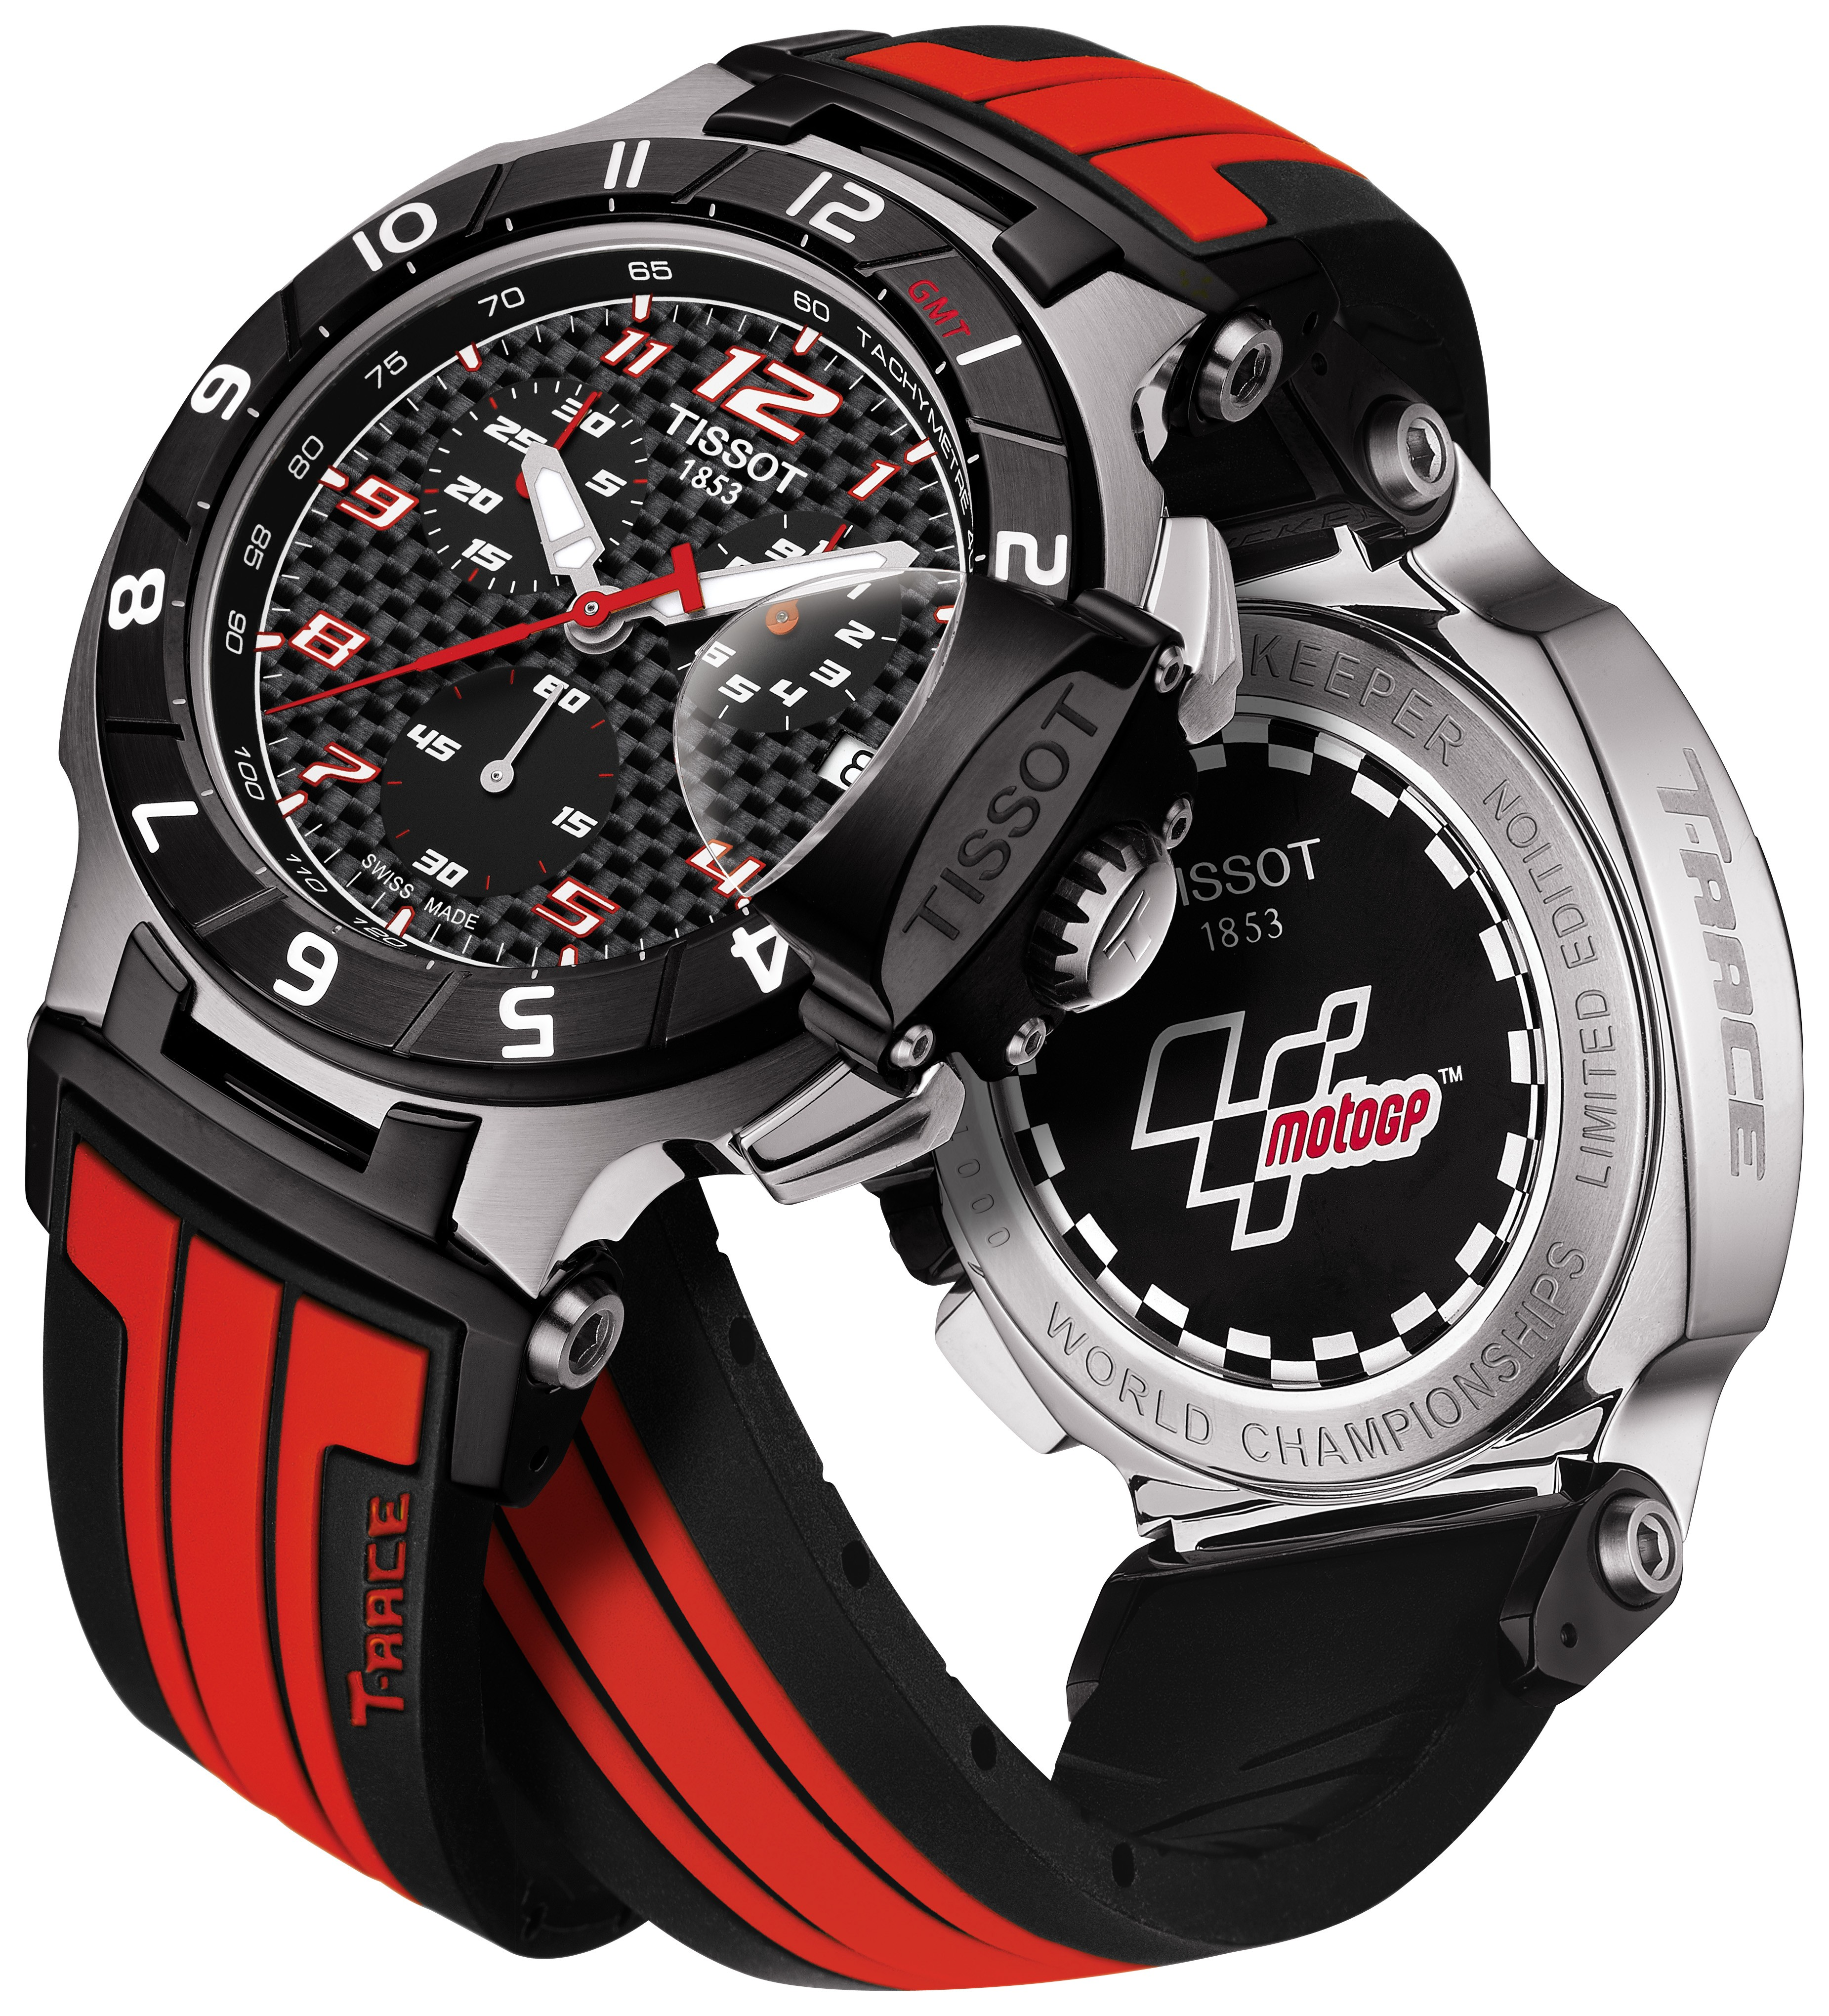 2015 motogp tissot watch collection swiss sports watch. Black Bedroom Furniture Sets. Home Design Ideas